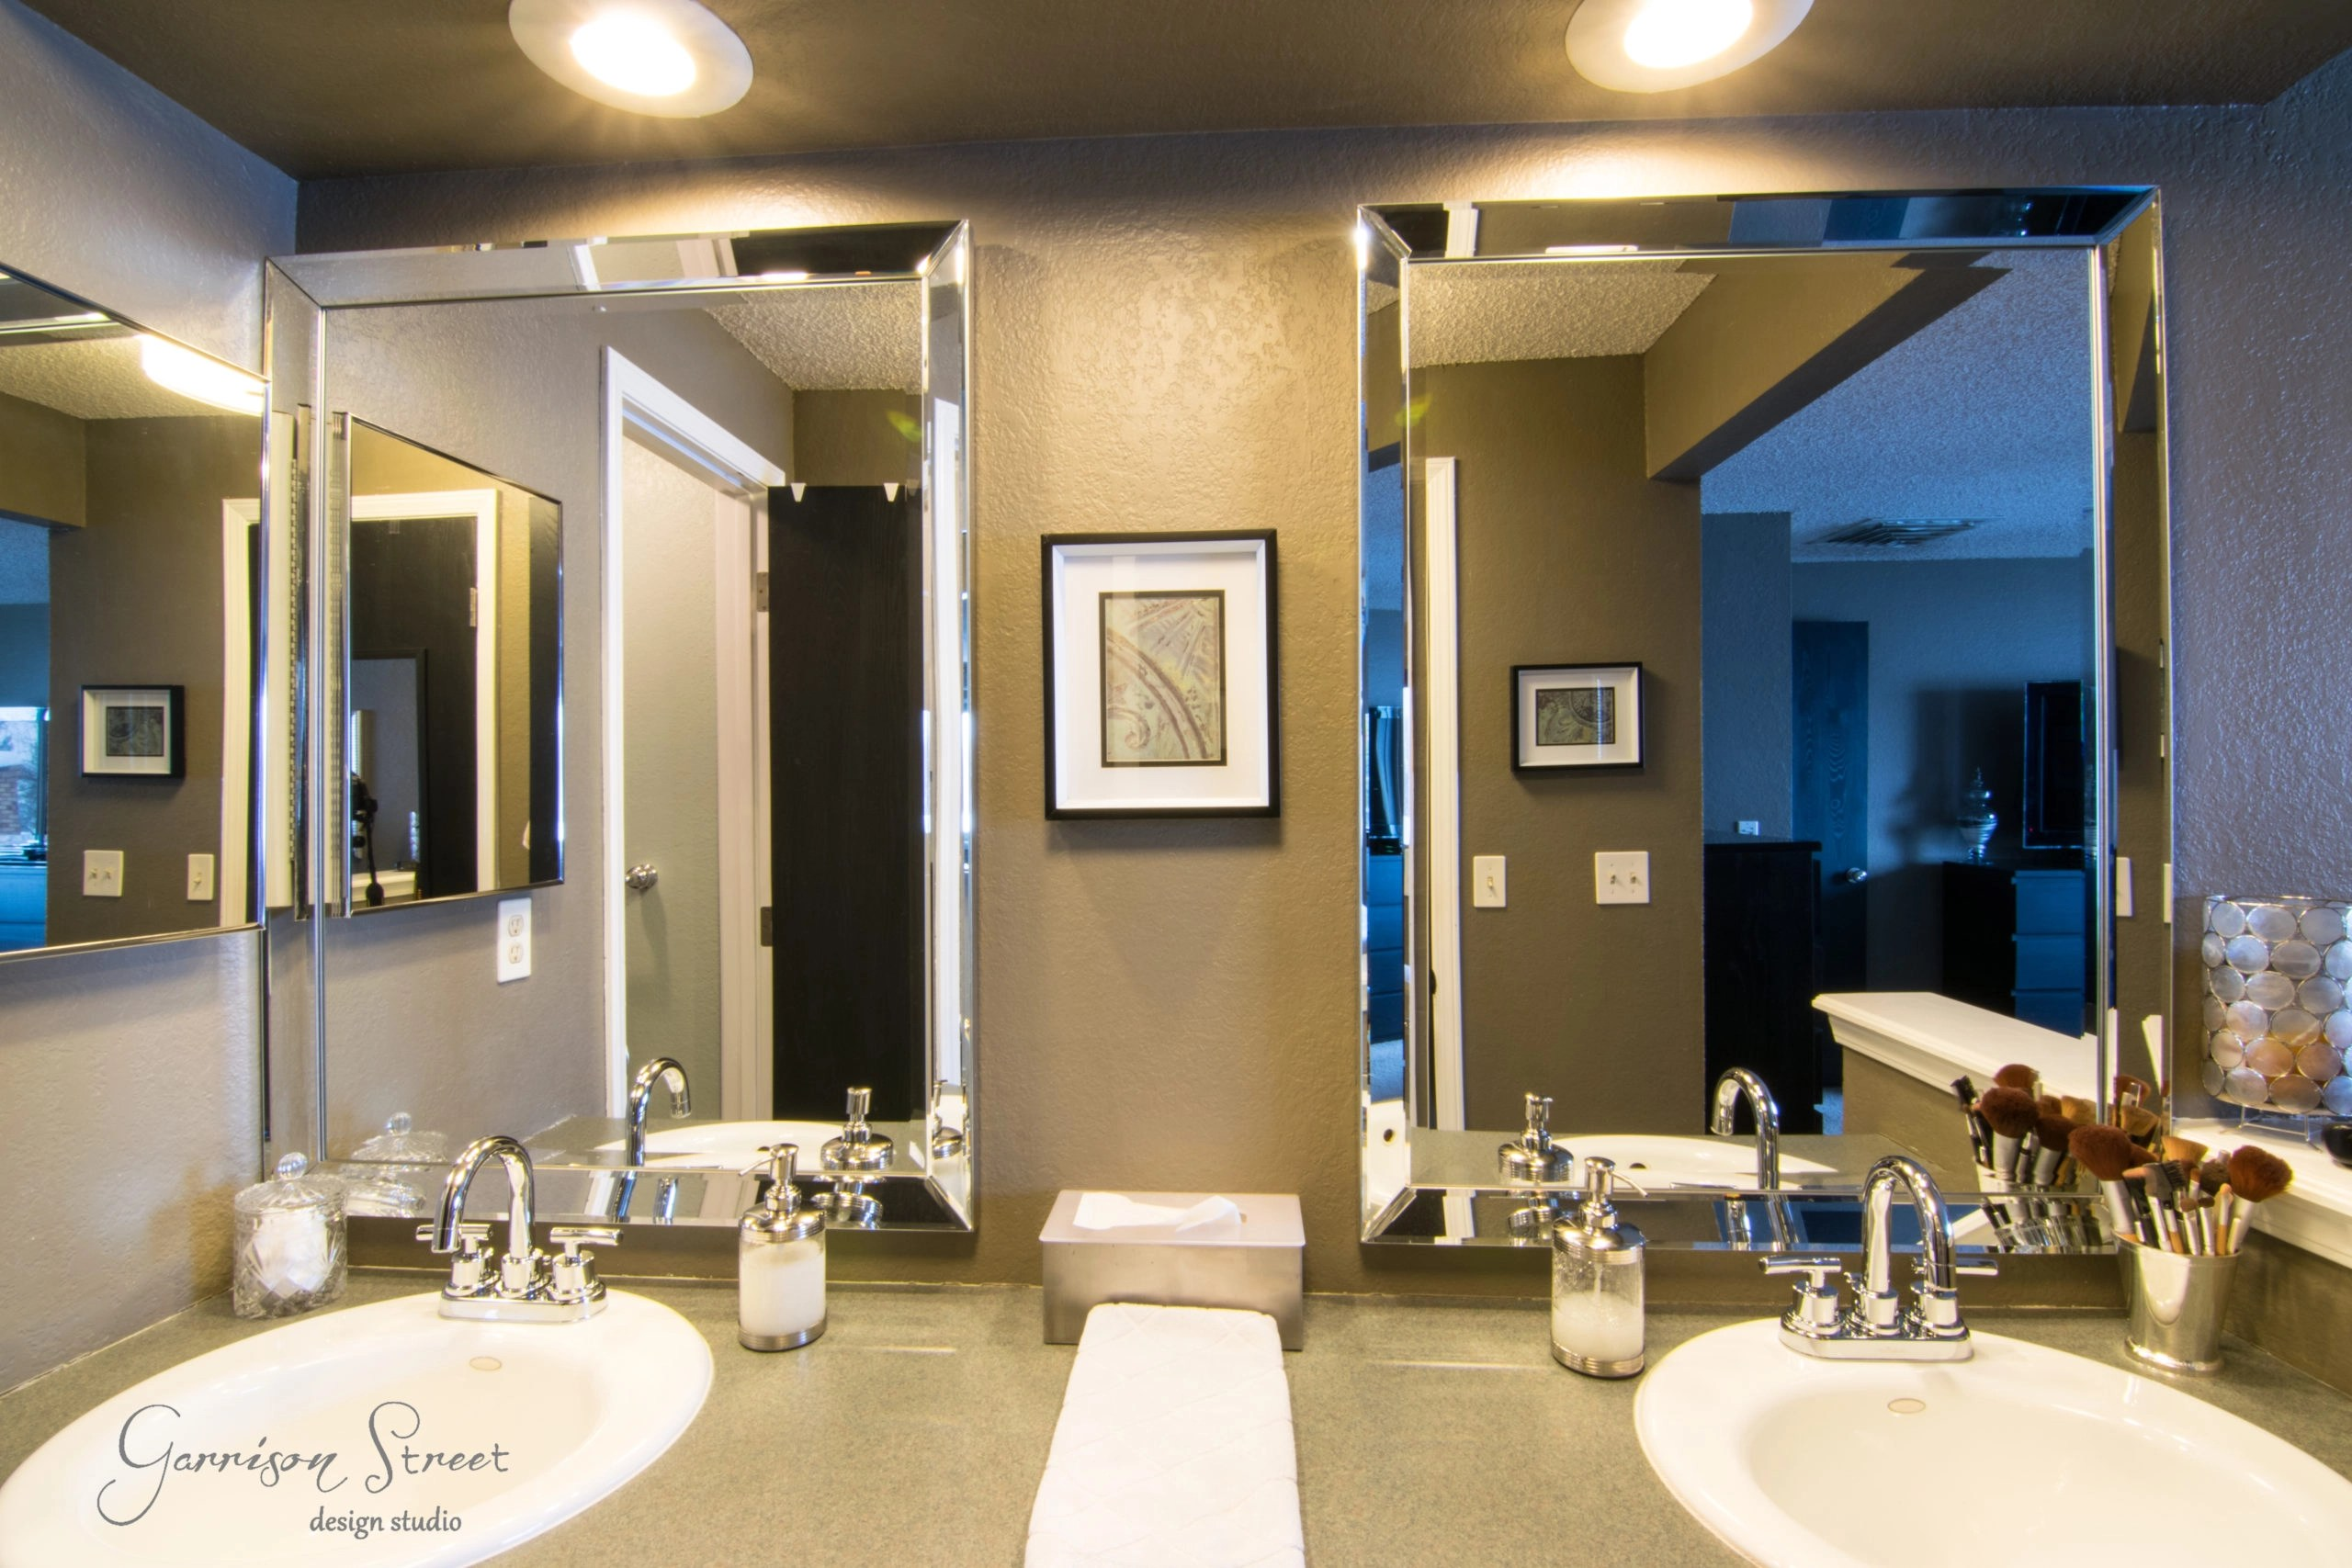 A Simple Fix For The Time Being. For Less Than $350 This Bathroom Was  Already An Improvement!